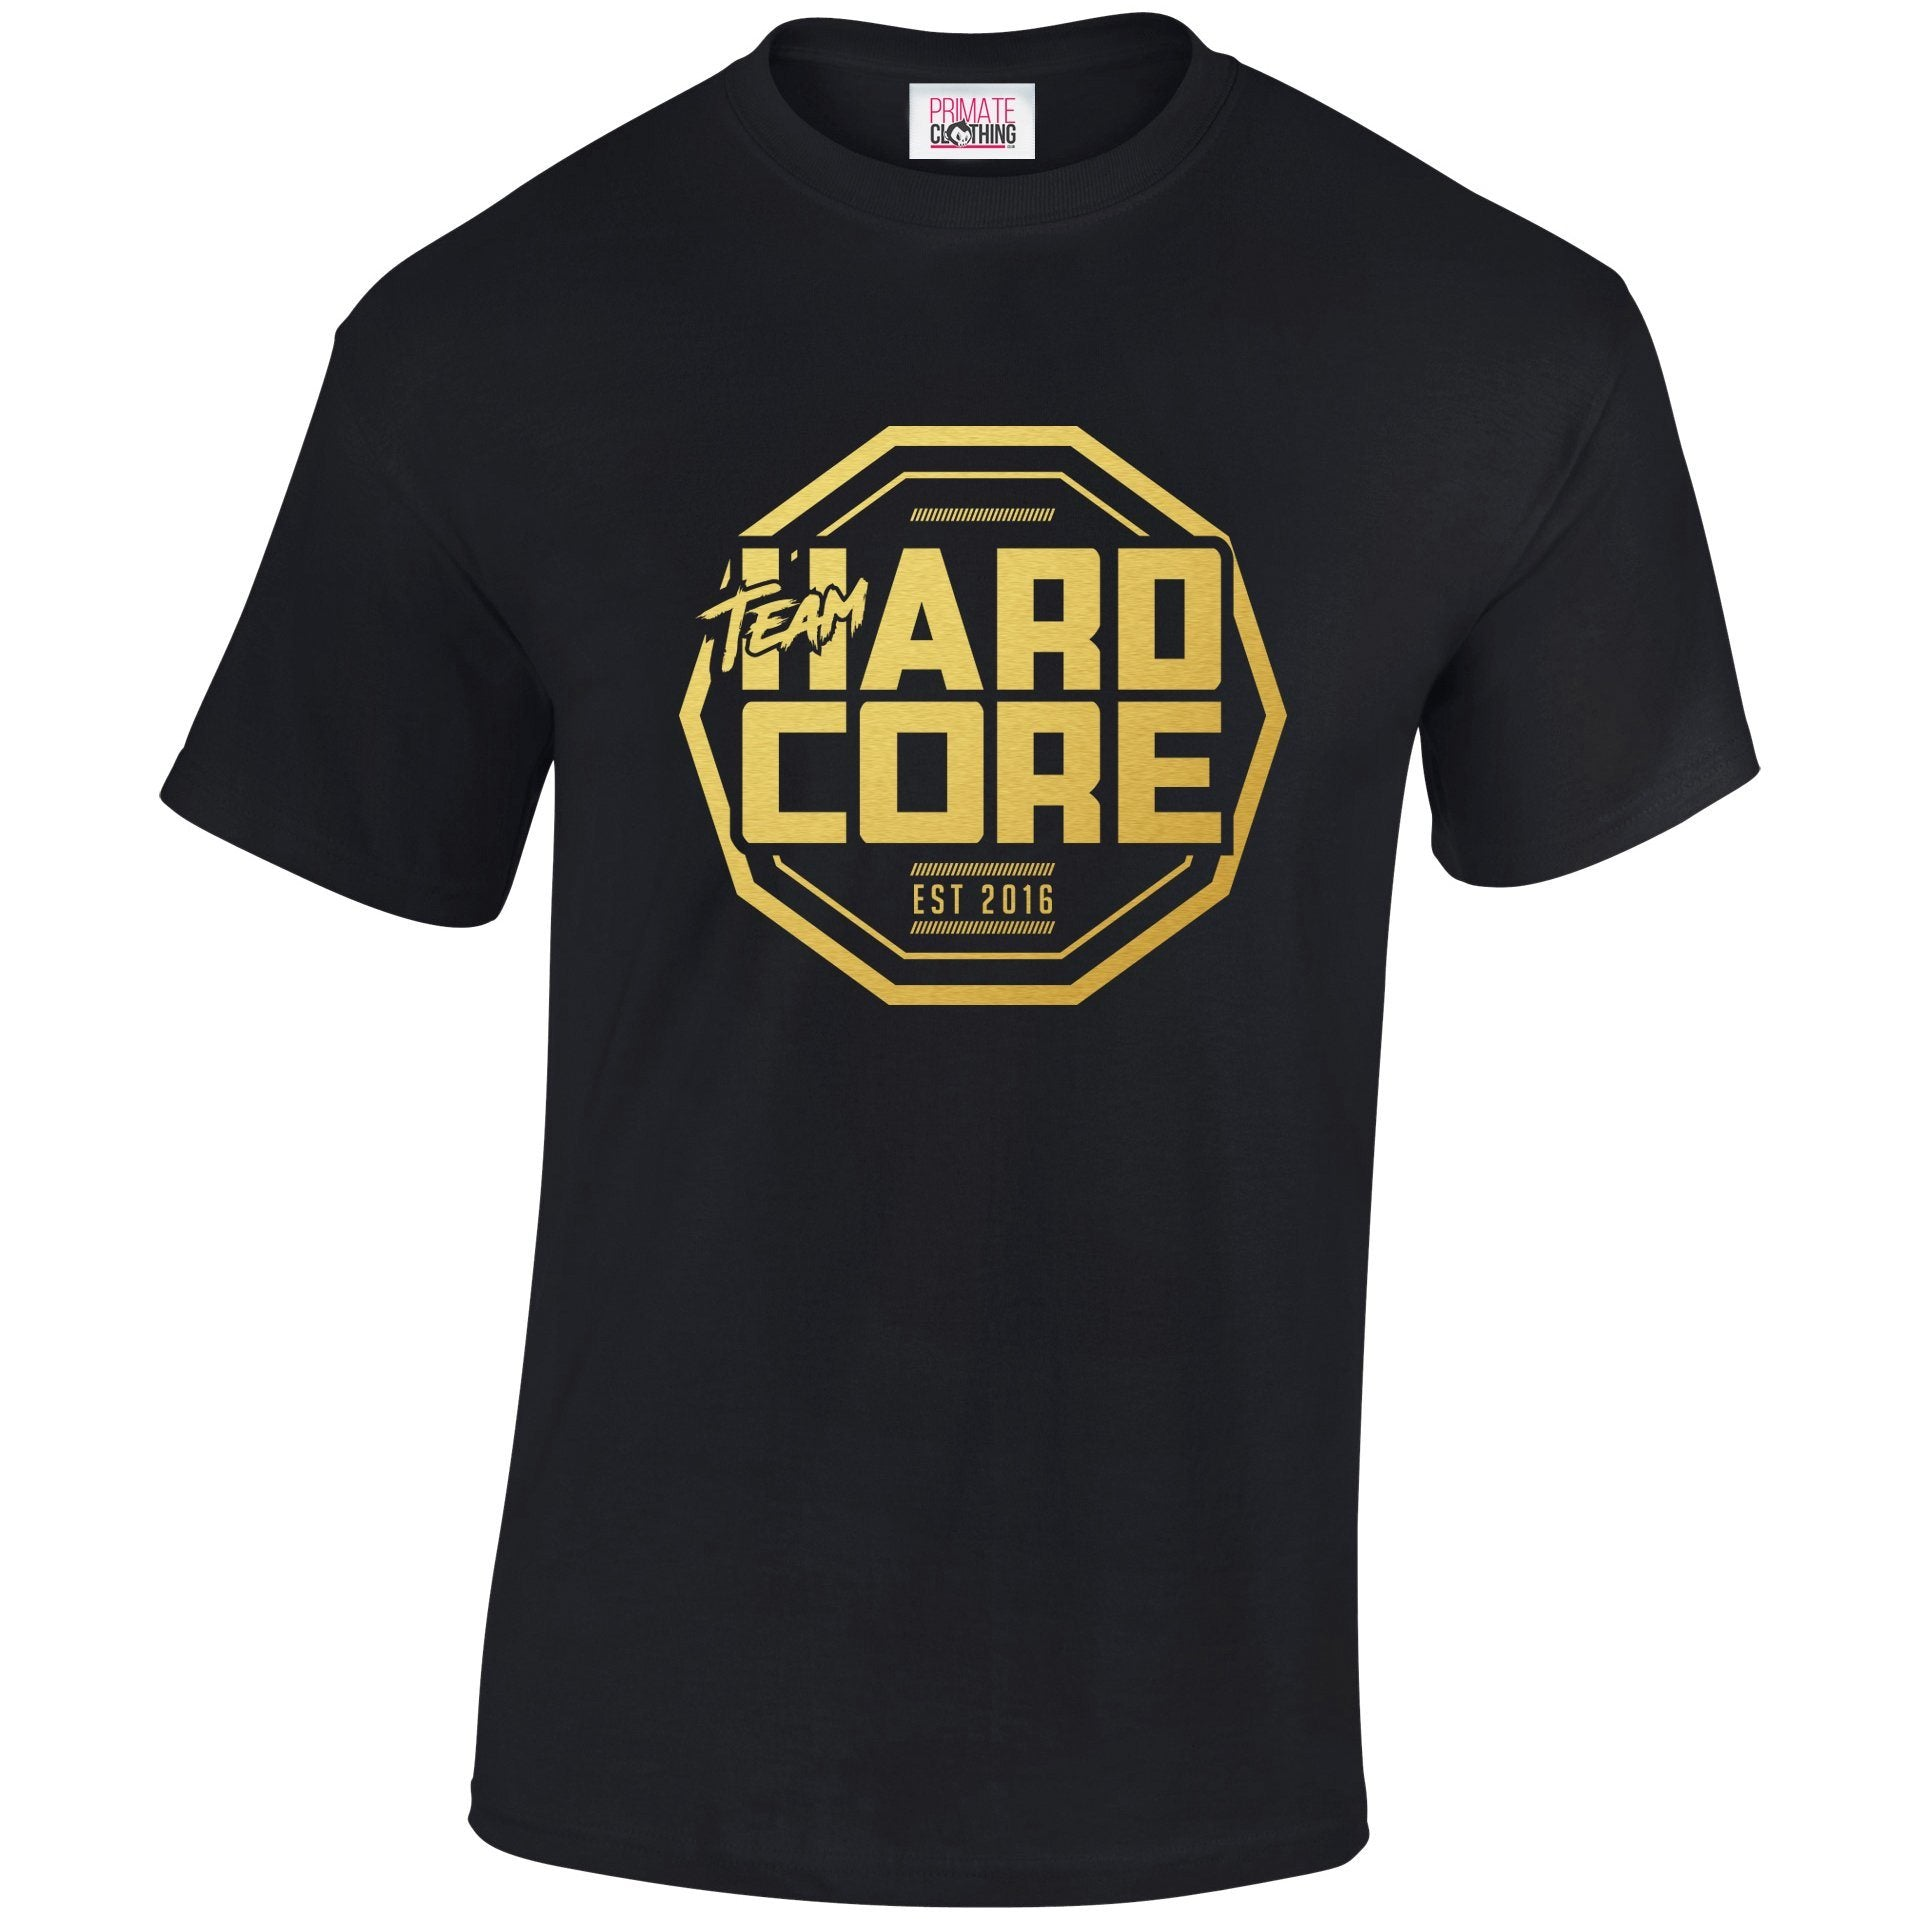 Team Hardcore Unisex T-Shirt - Black & Gold Team Hardcore Small